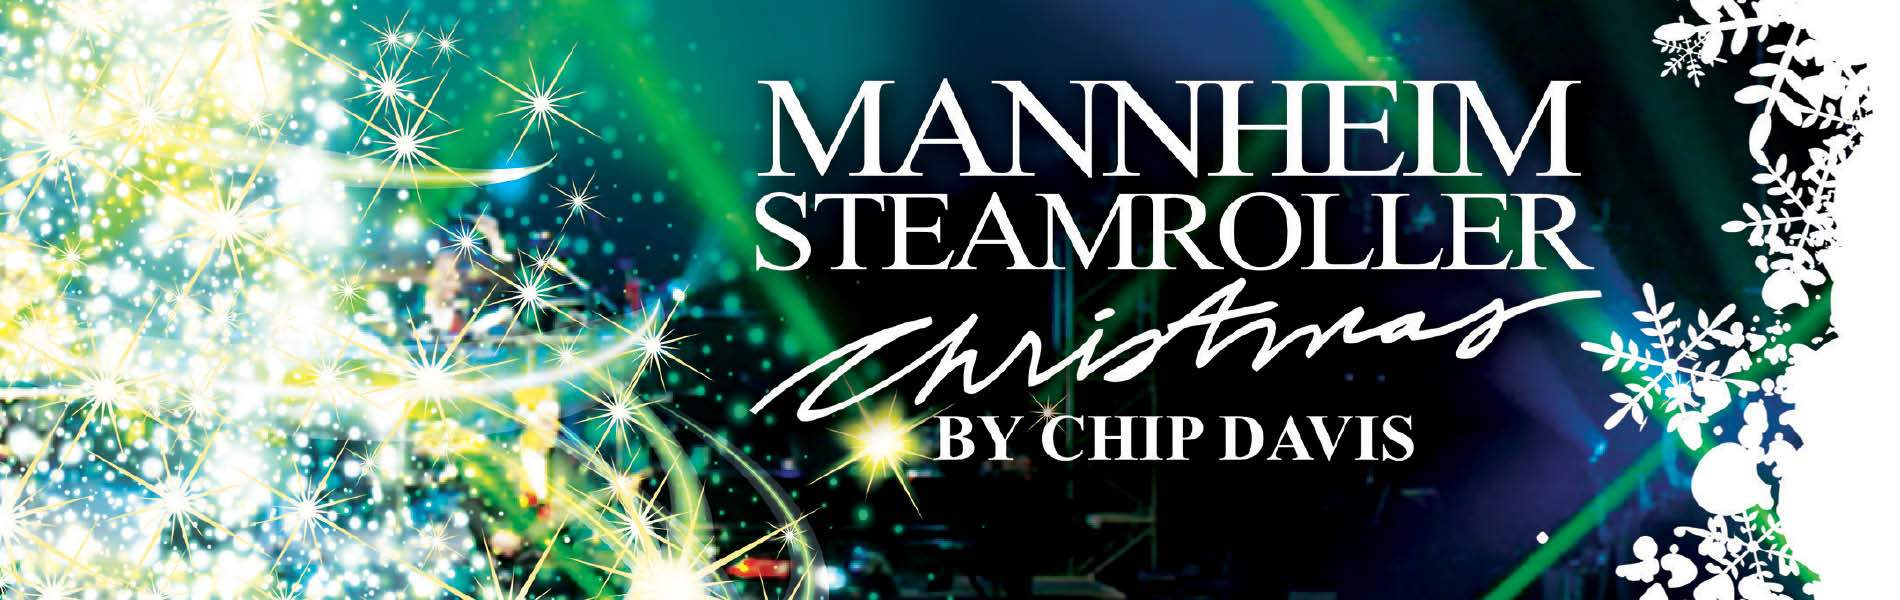 Mannheim Steamroller Christmas by Chip Davis Event Banner